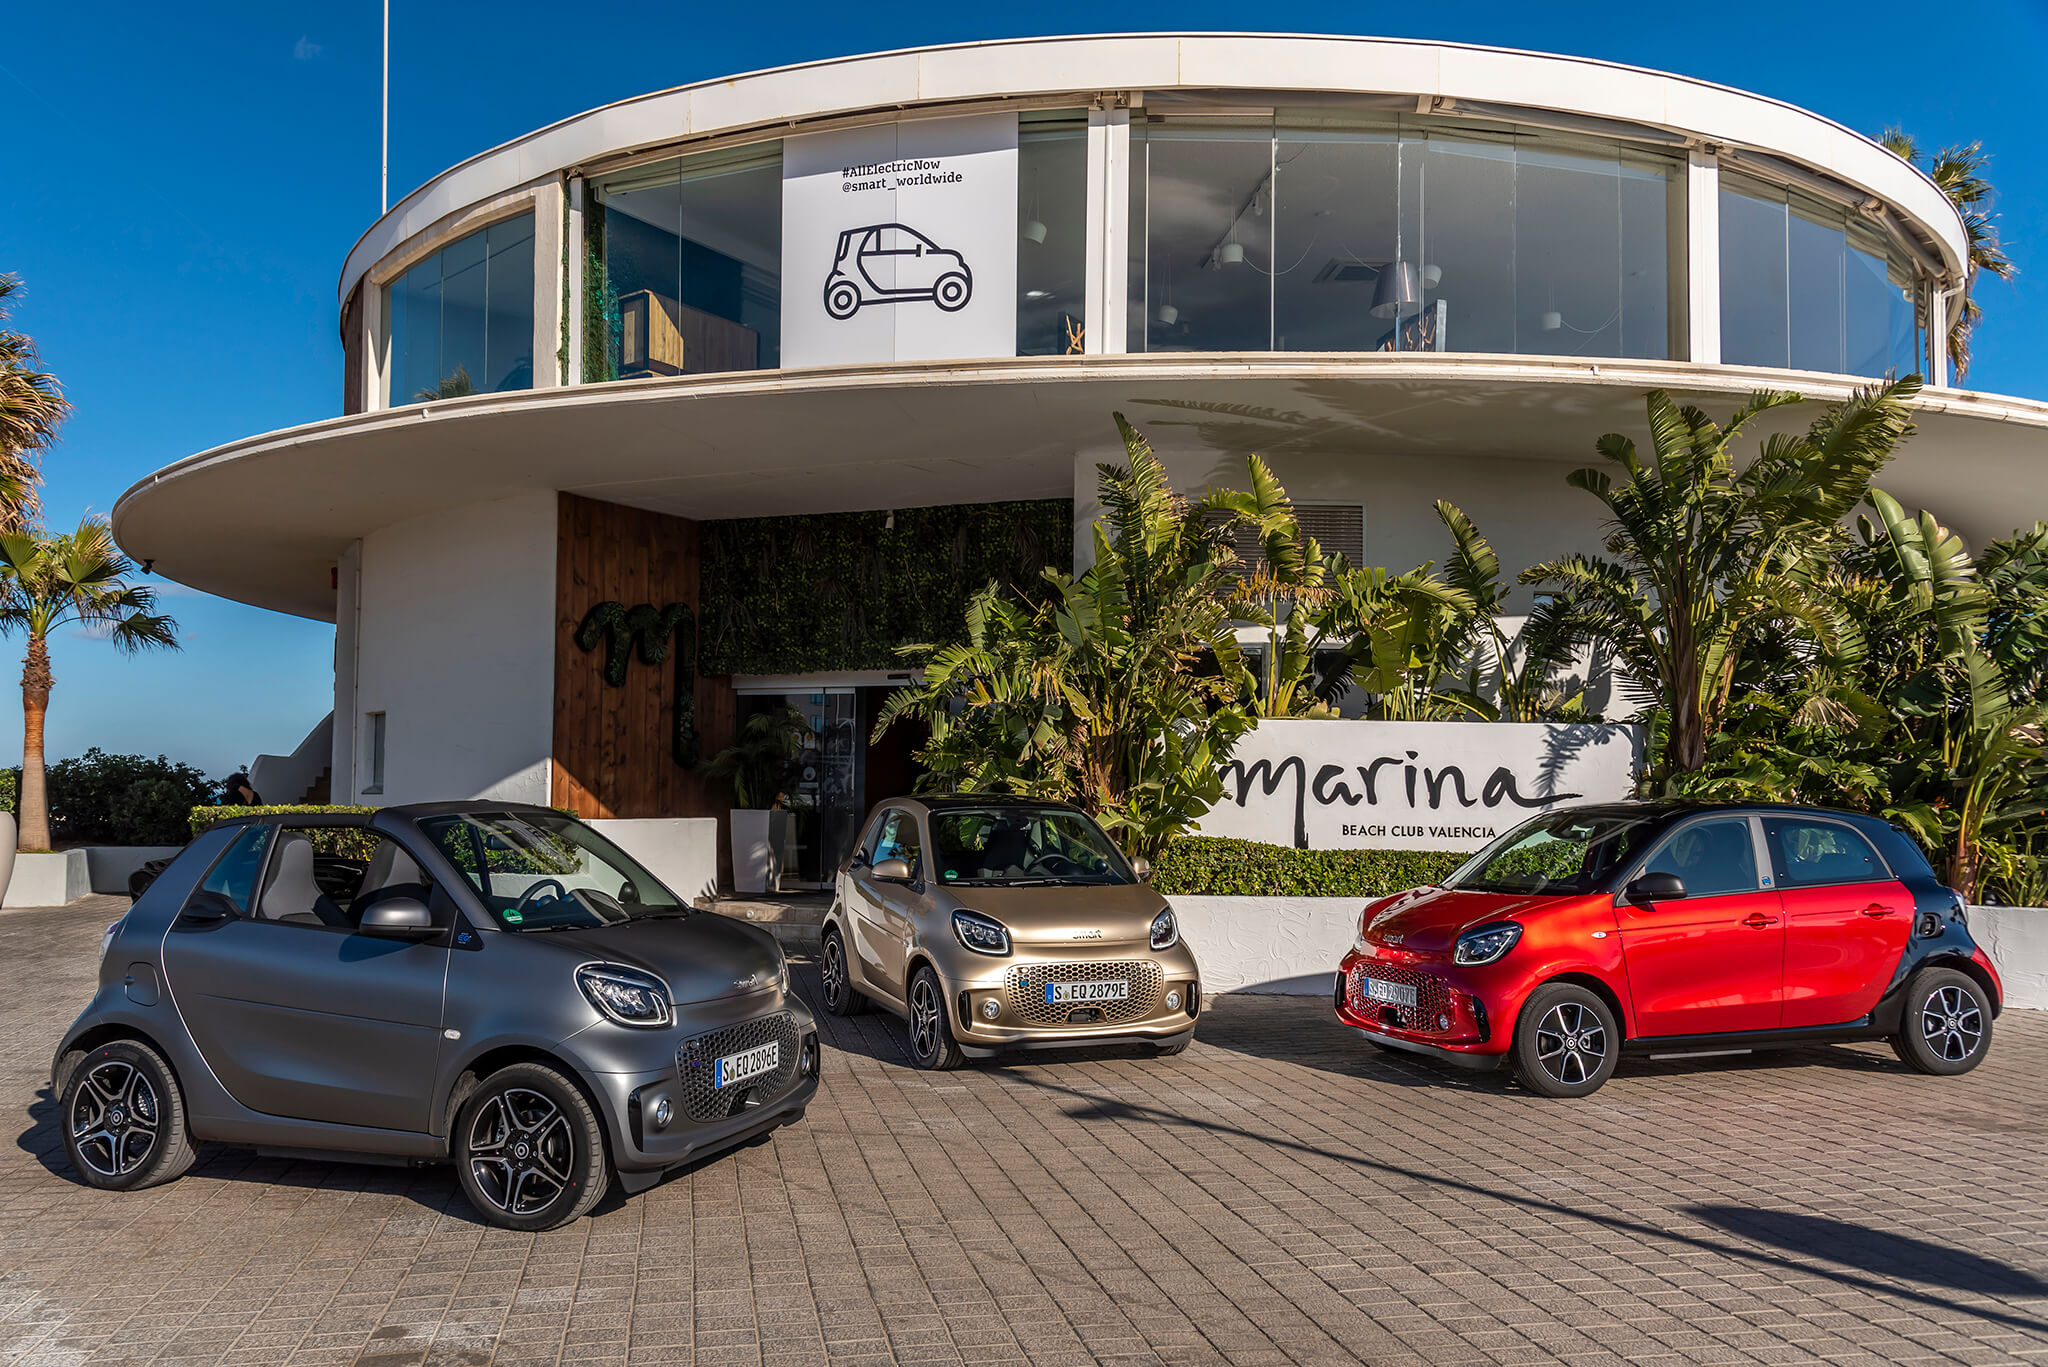 smart EQ fortwo cabrio, smart EQ fortwo, smart EQ forfour